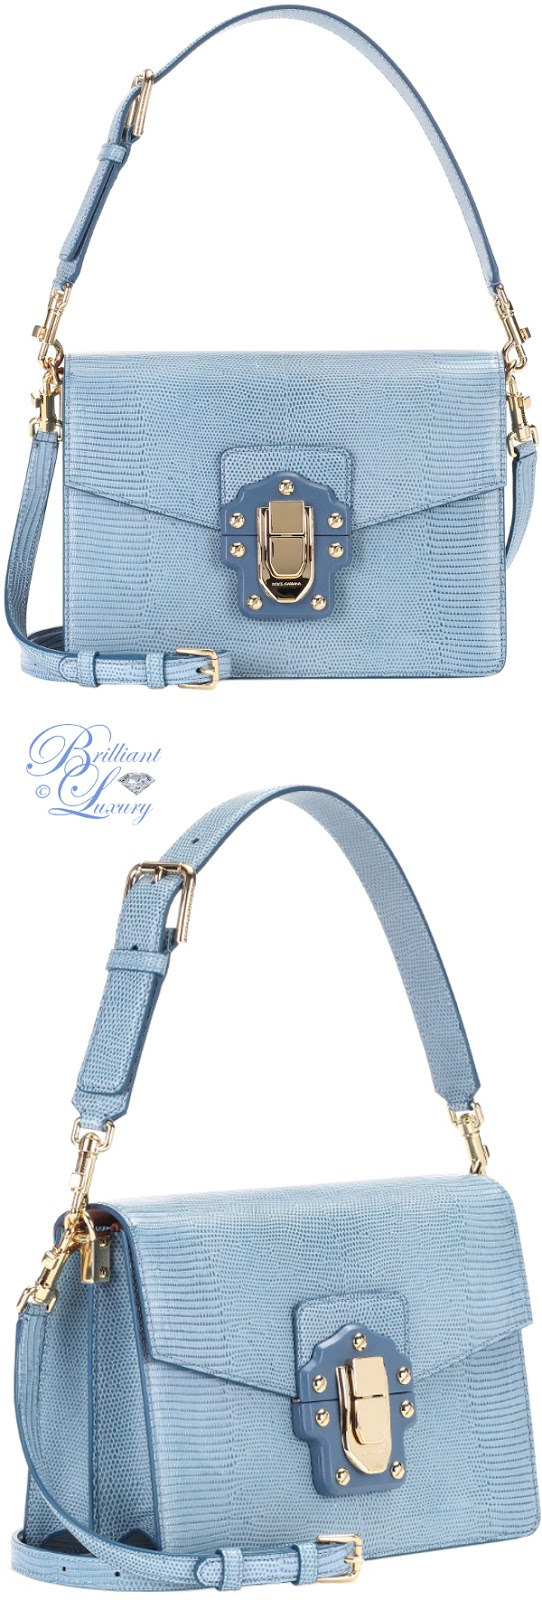 Brilliant Luxury ♦ Dolce & Gabbana Lucia leather shoulder bag